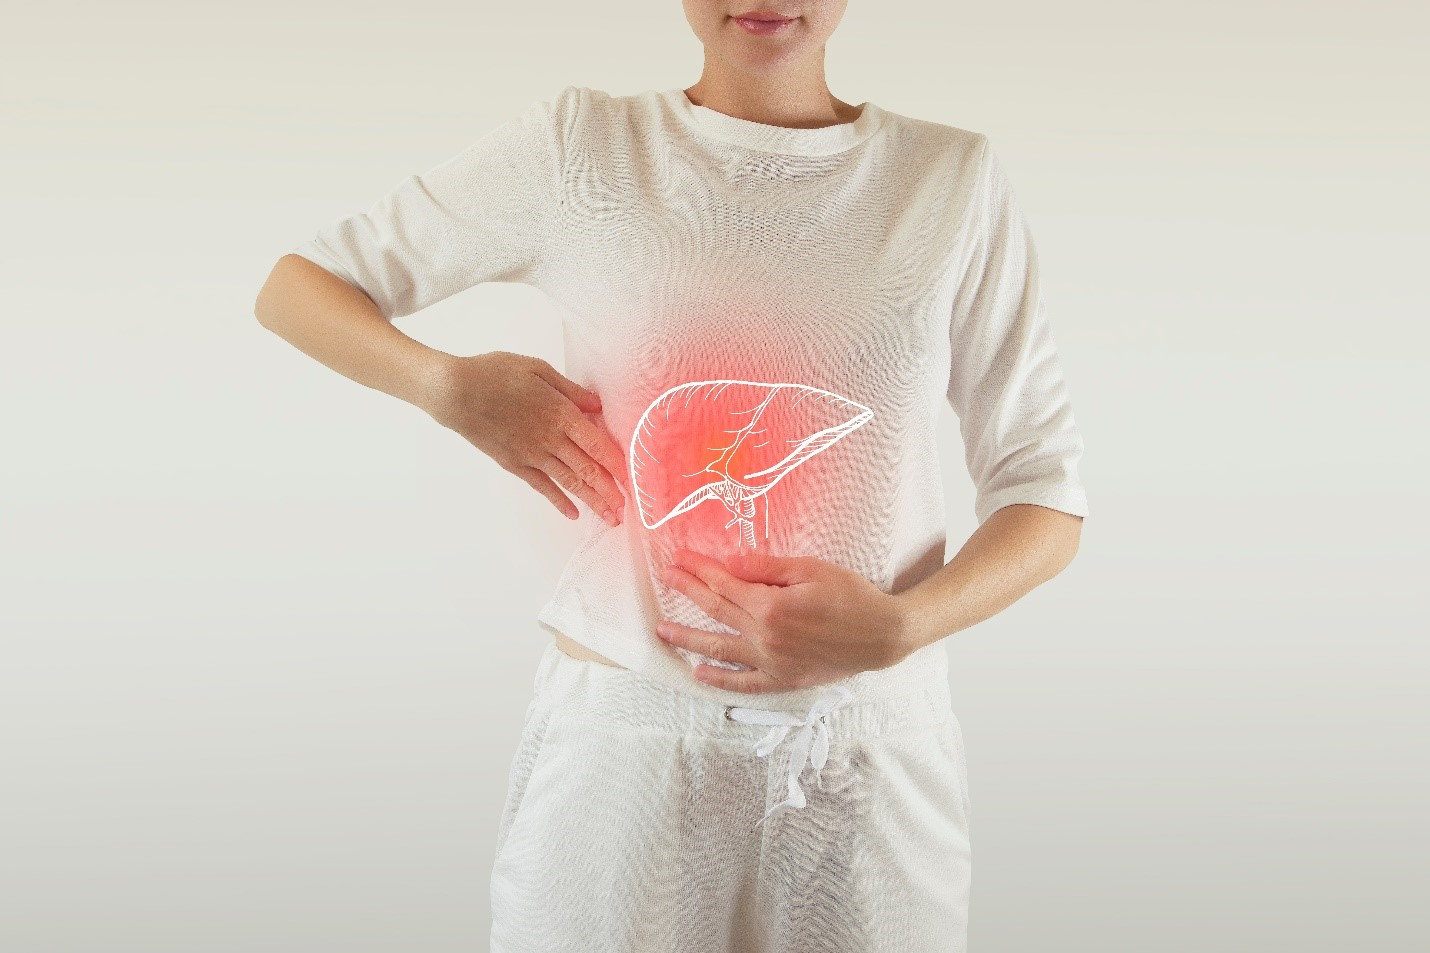 Top Reasons to Be Concerned About Fatty Liver Disease